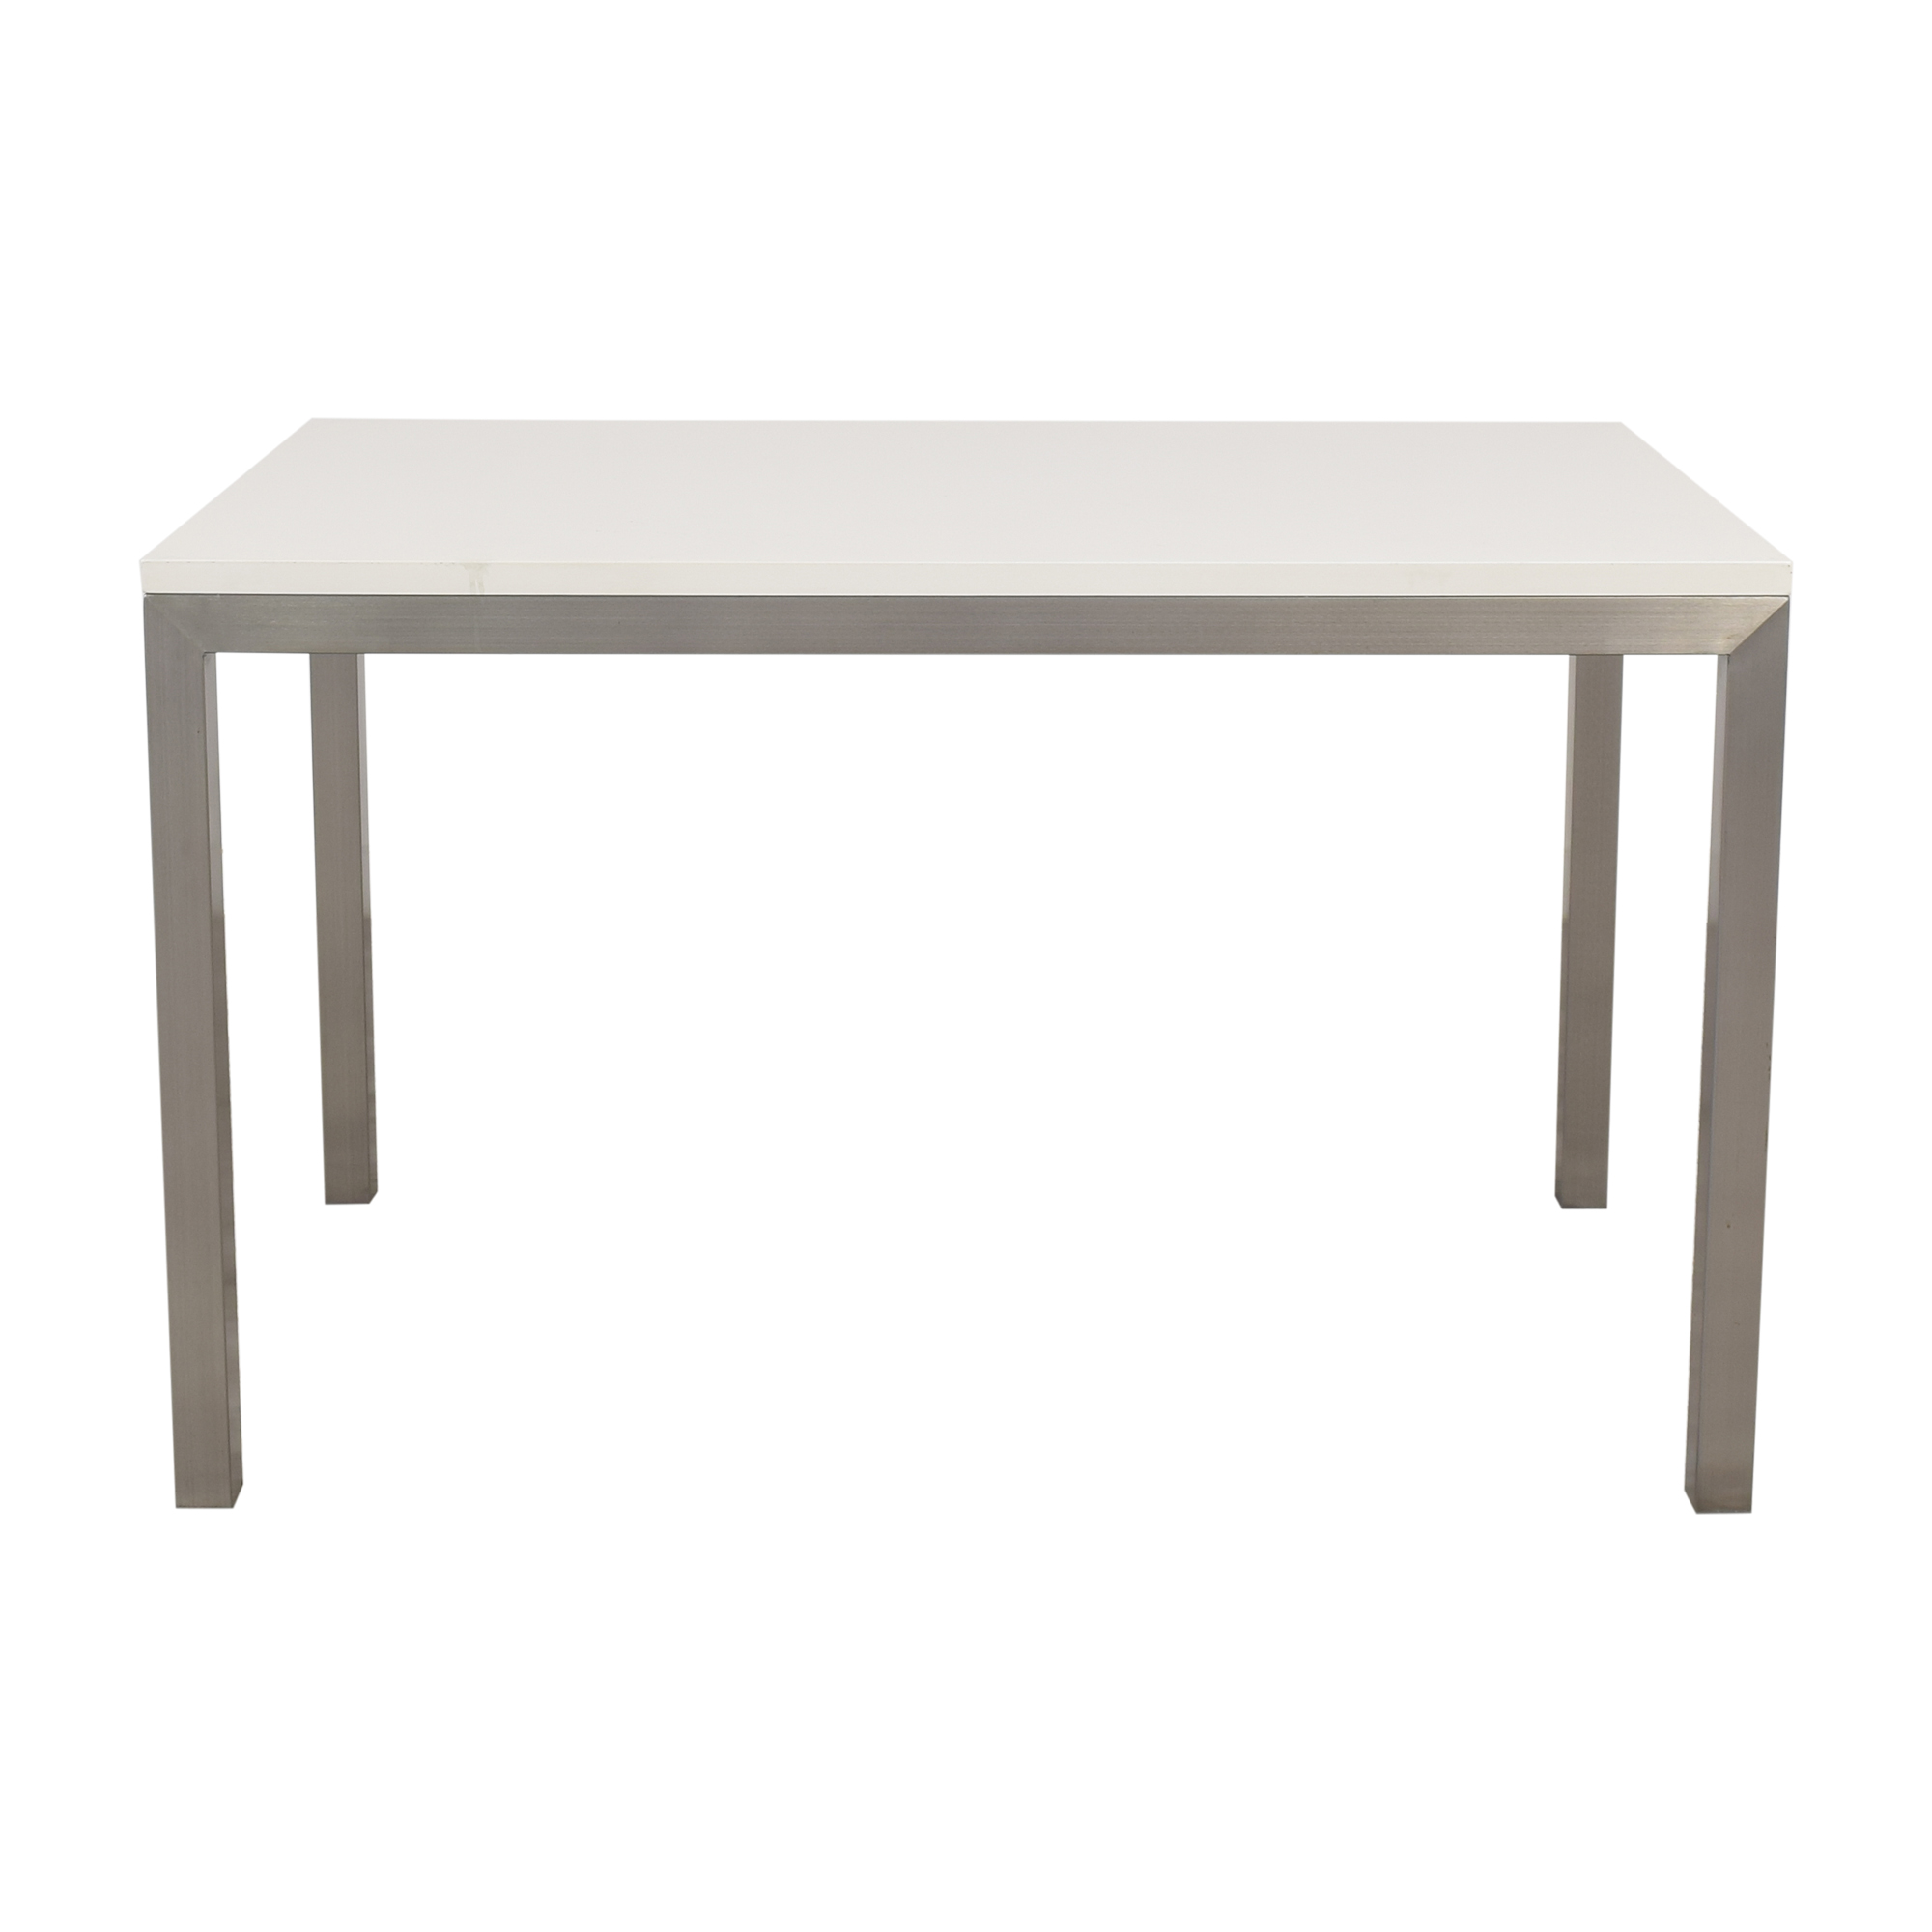 Crate & Barrel Crate & Barrel Parsons Table price